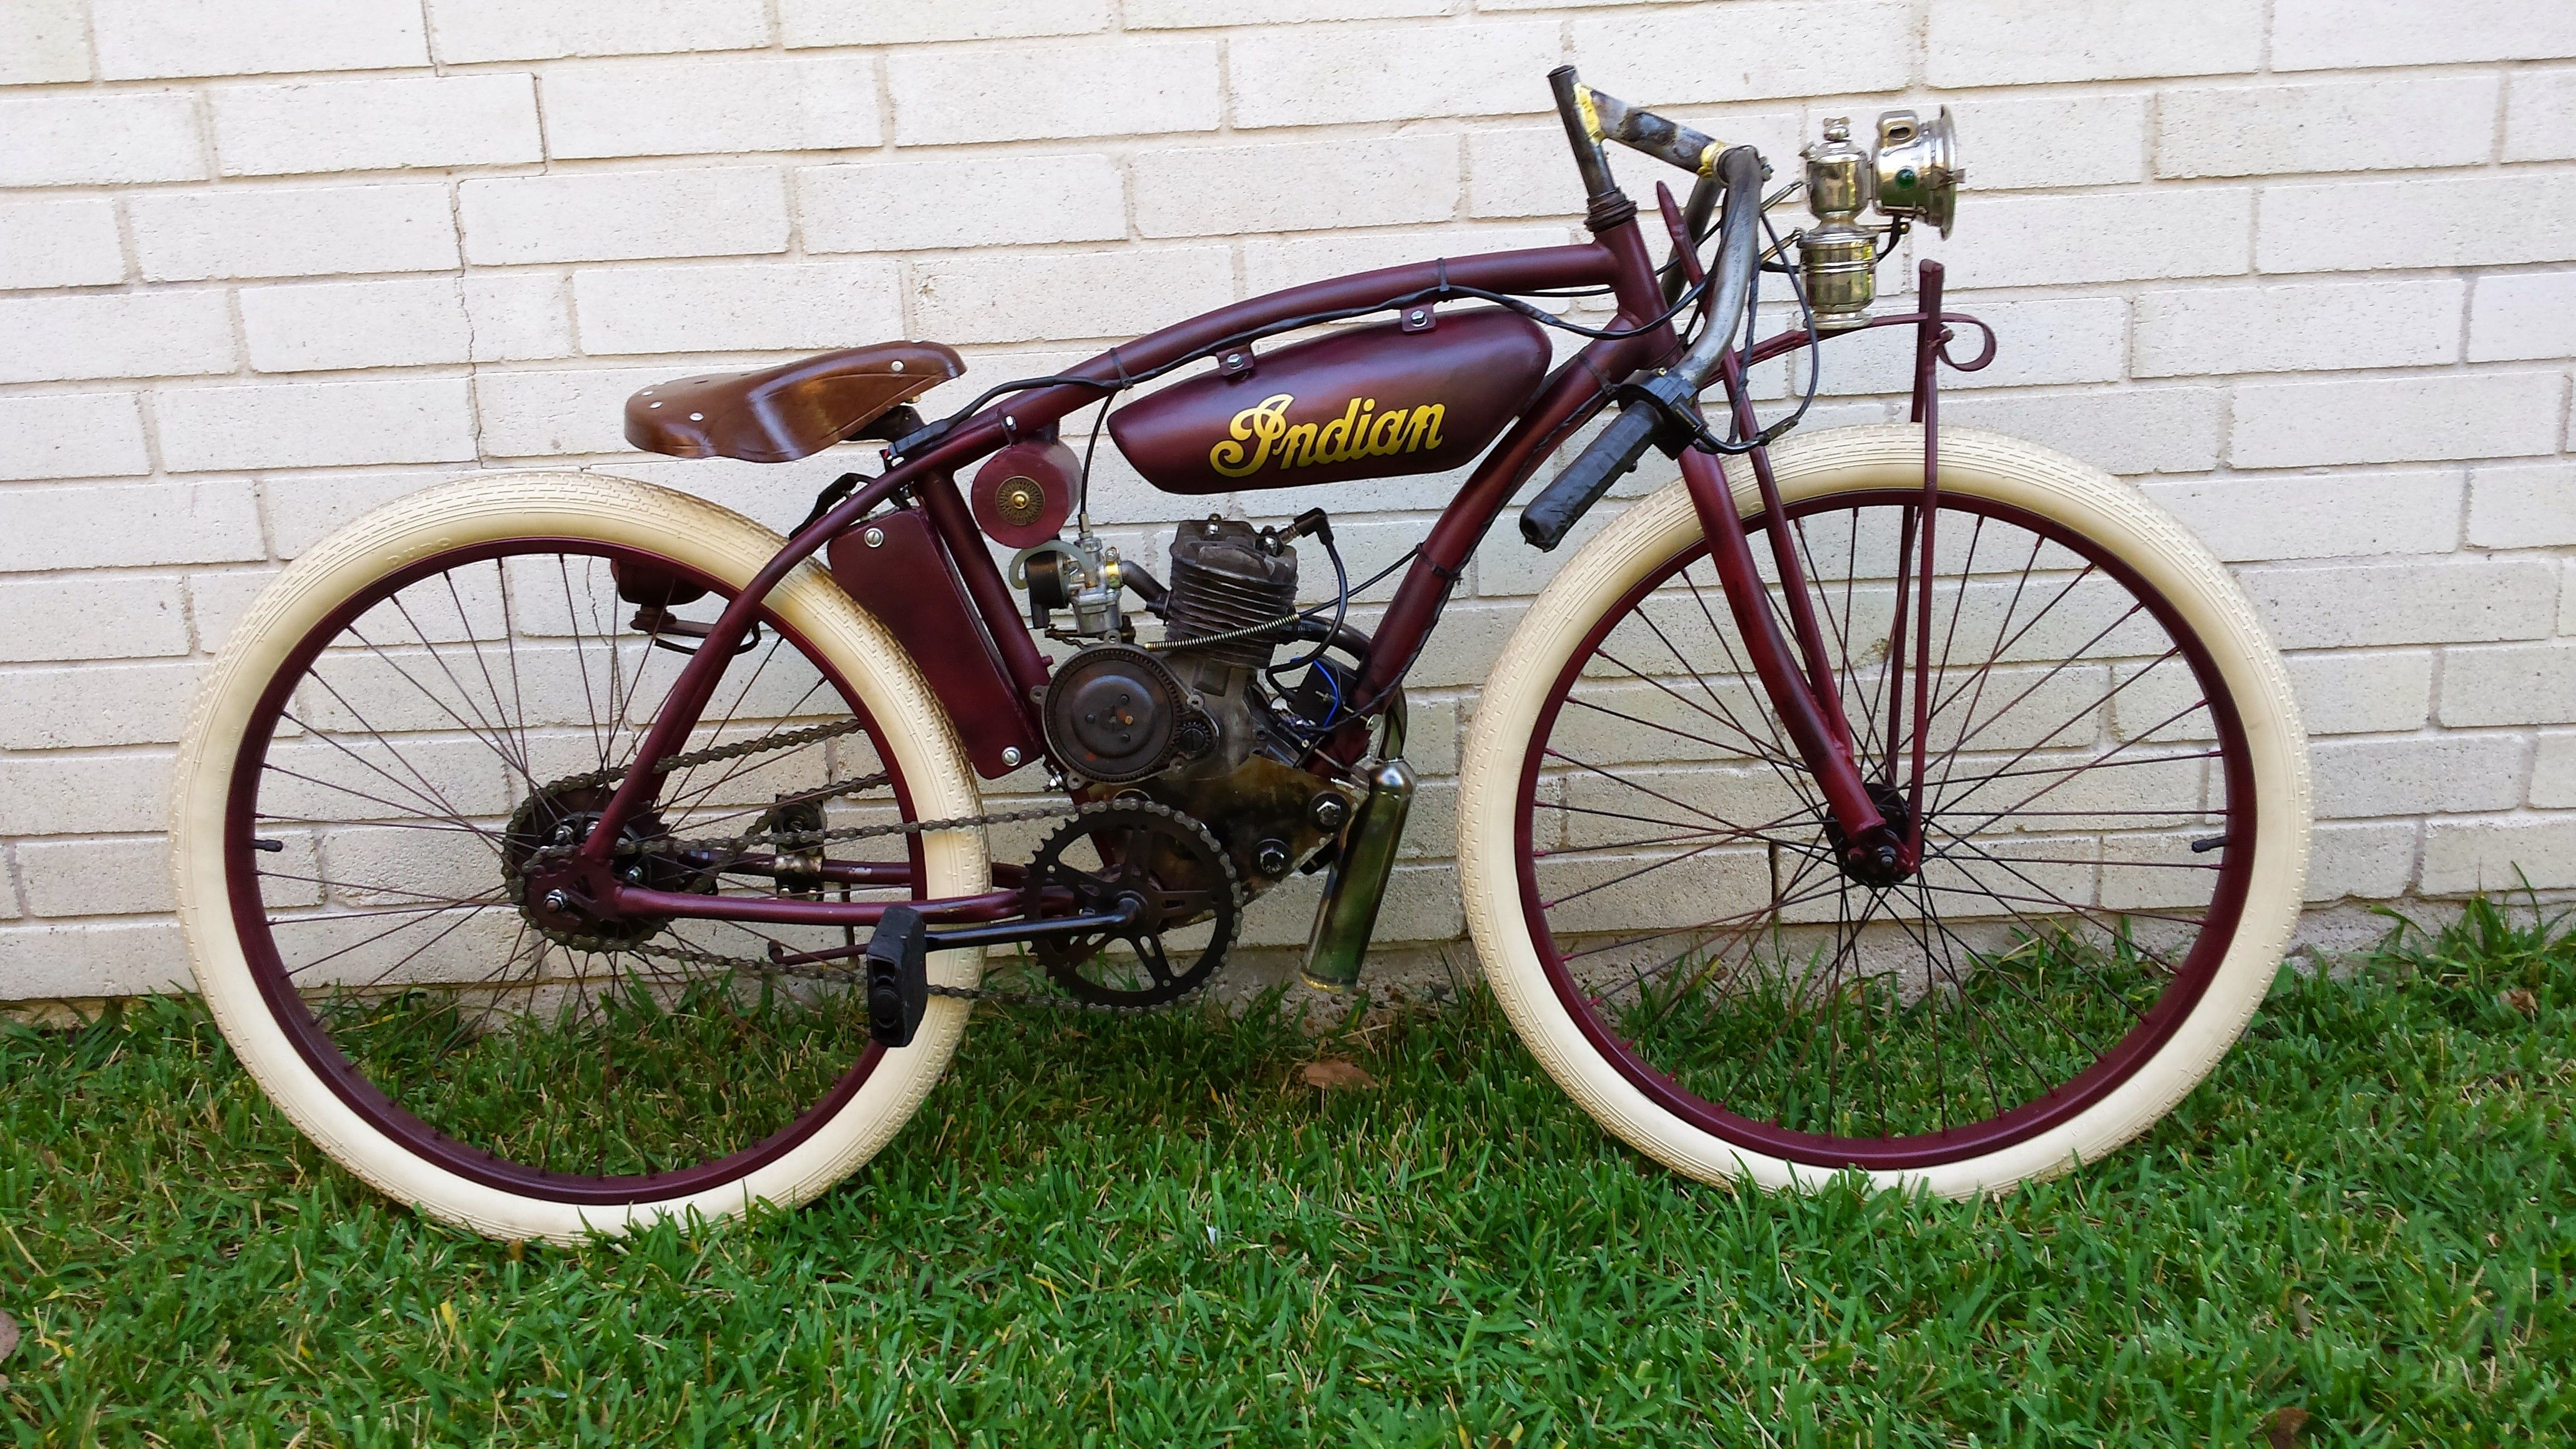 Indian Board Track Replica Houston Spring Texas Motorized Bicycles Sales Service Parts Bicycle Motorized Bicycle Bicycles For Sale